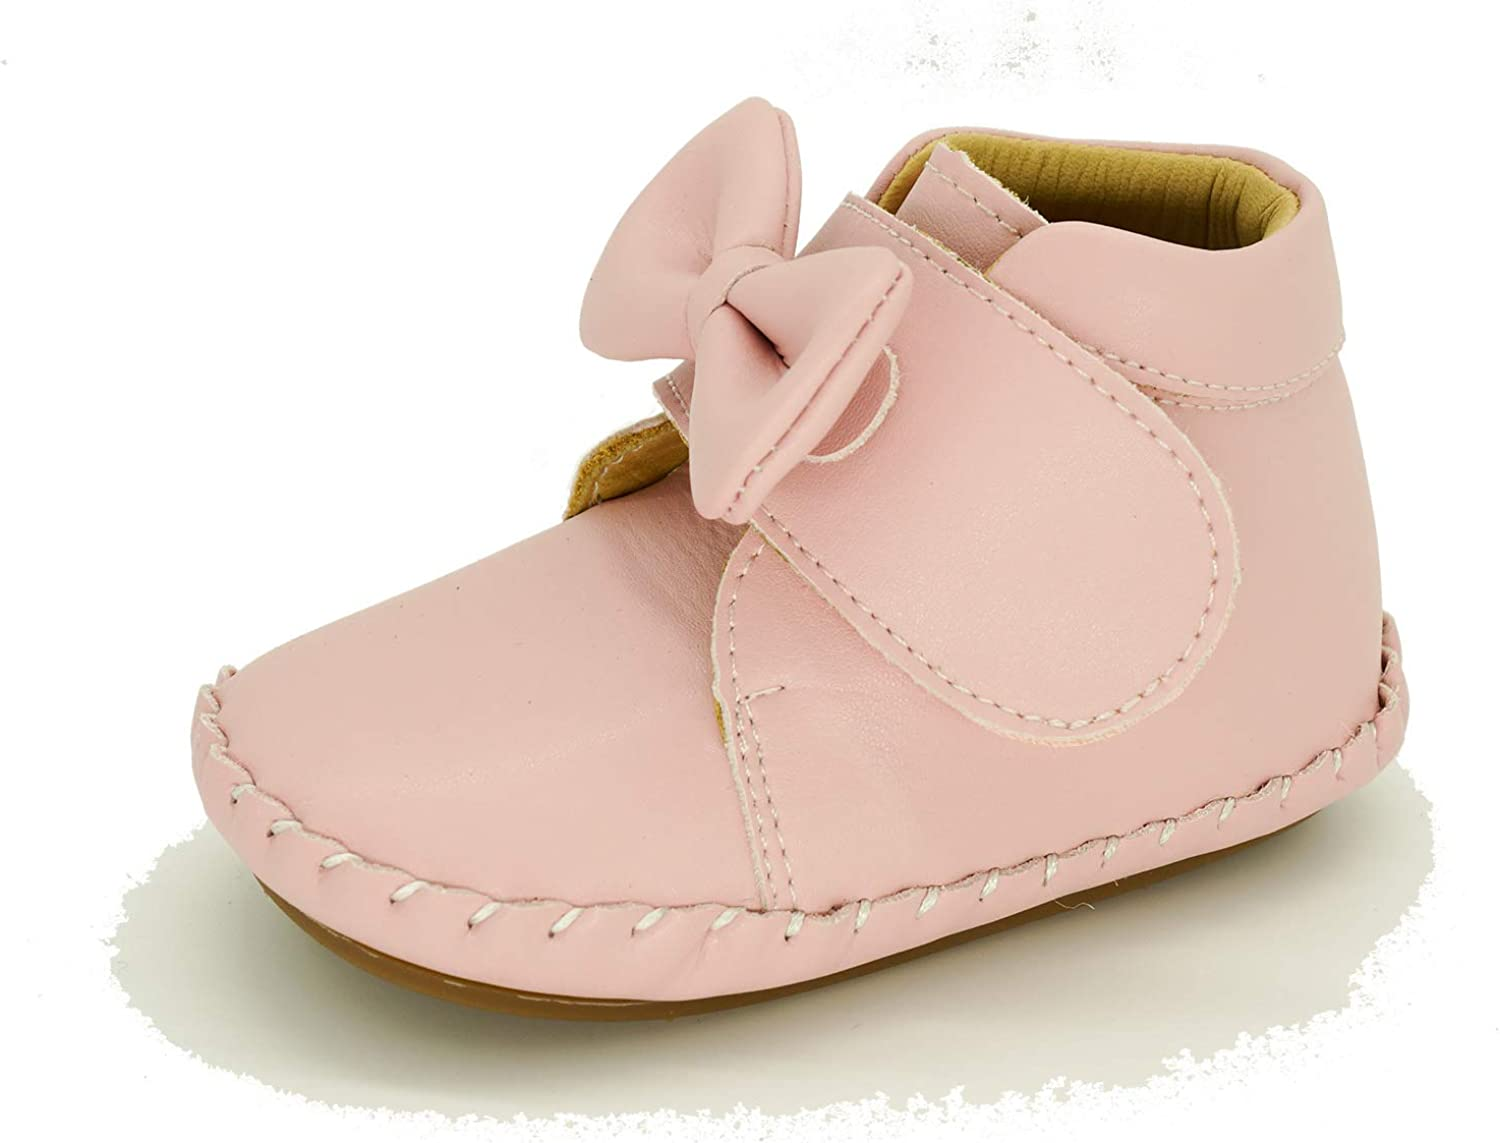 KARUBI Baby Shoes 2021 spring and summer ! Super beauty product restock quality top! new Girls Boys Sneake Anti-Slip Casual Toddler